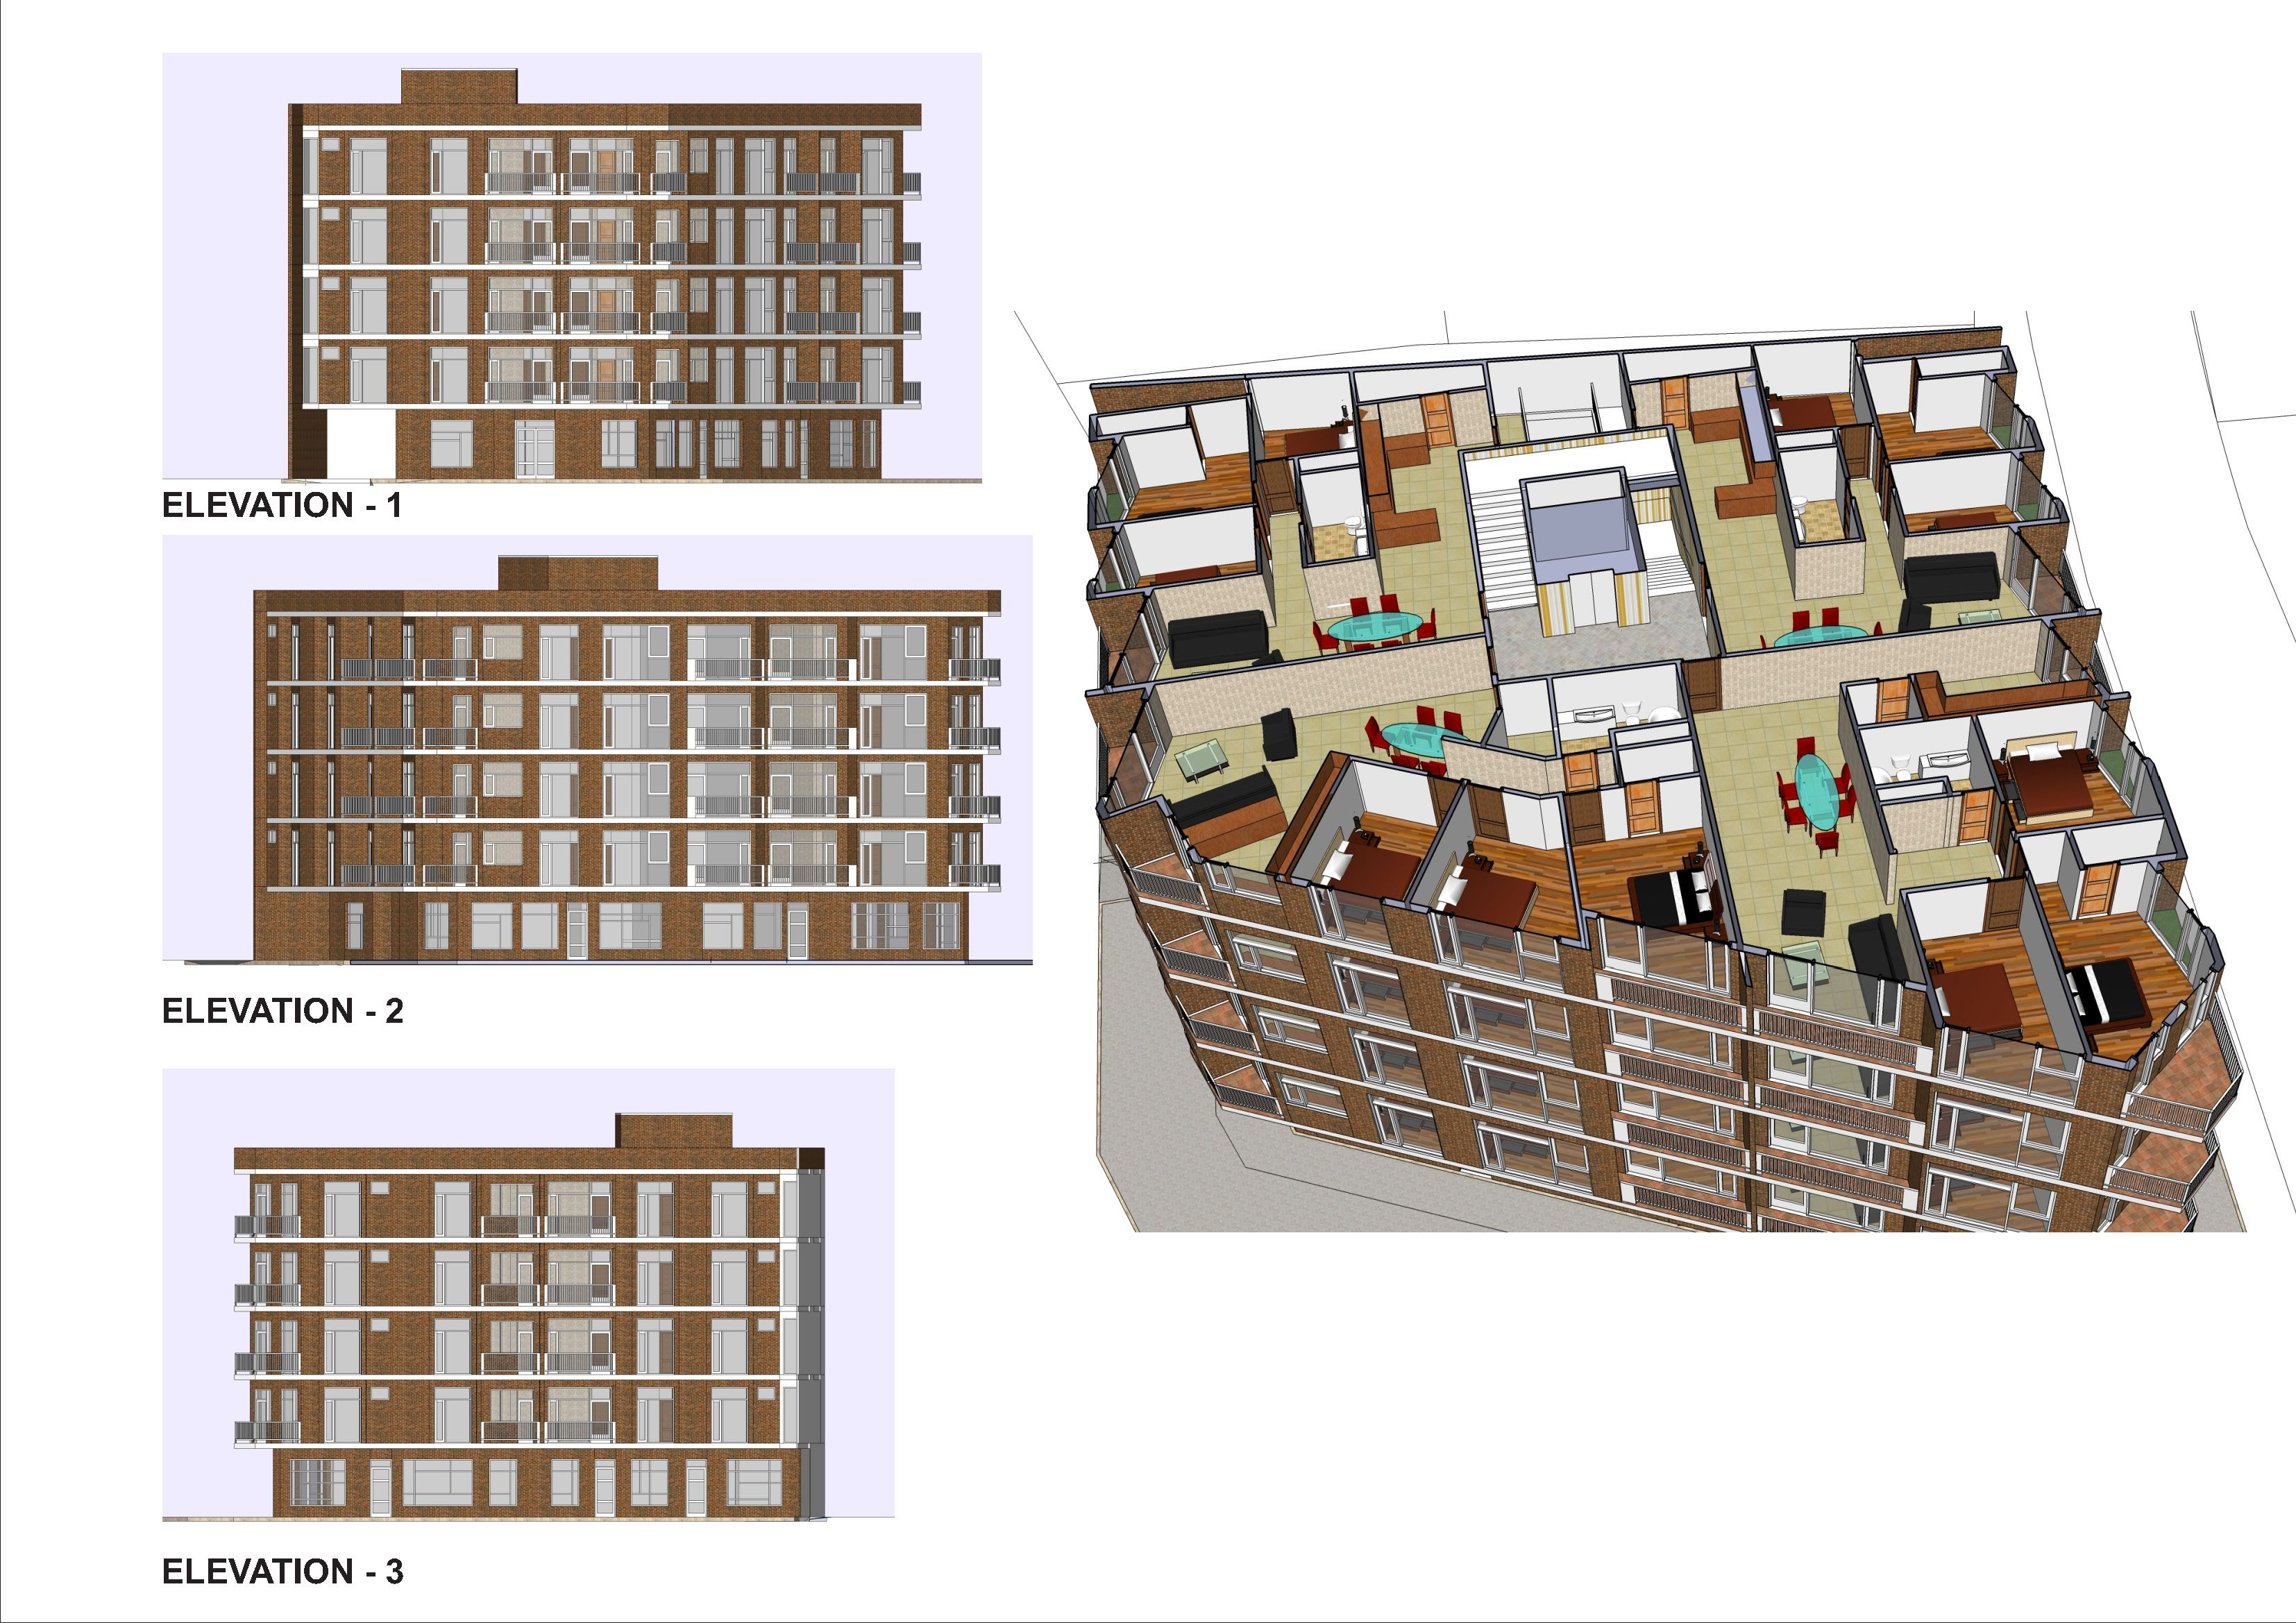 Incroyable Apartment Building Plans | Location: Aksaray, Turkey New Residential / Apartment  Building Plans